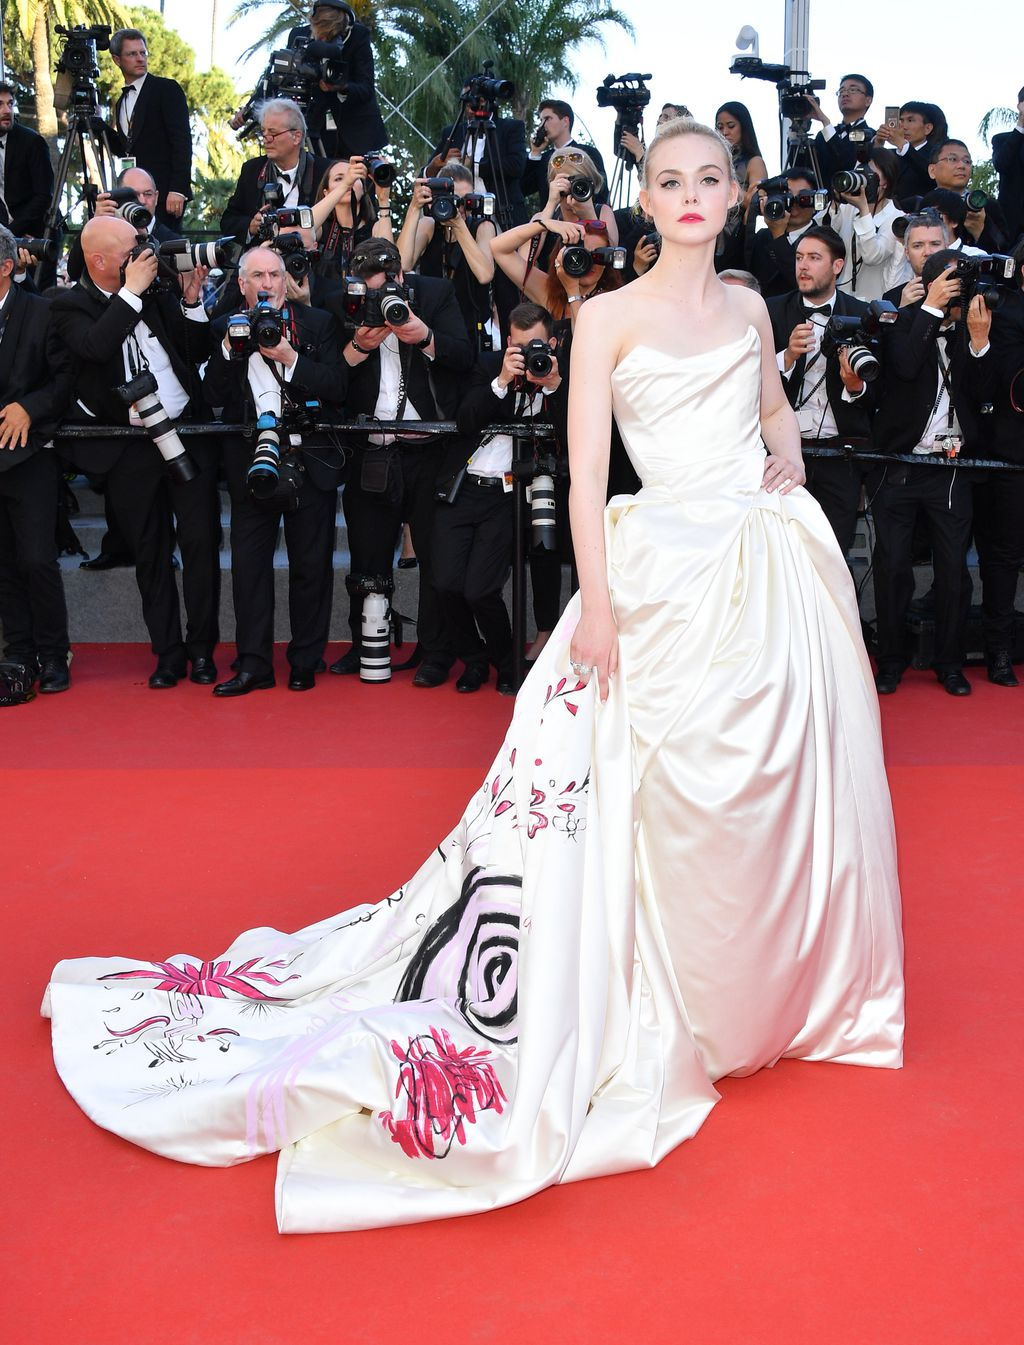 Ella Fanning in 2017 Cannes Film Festival red carpet